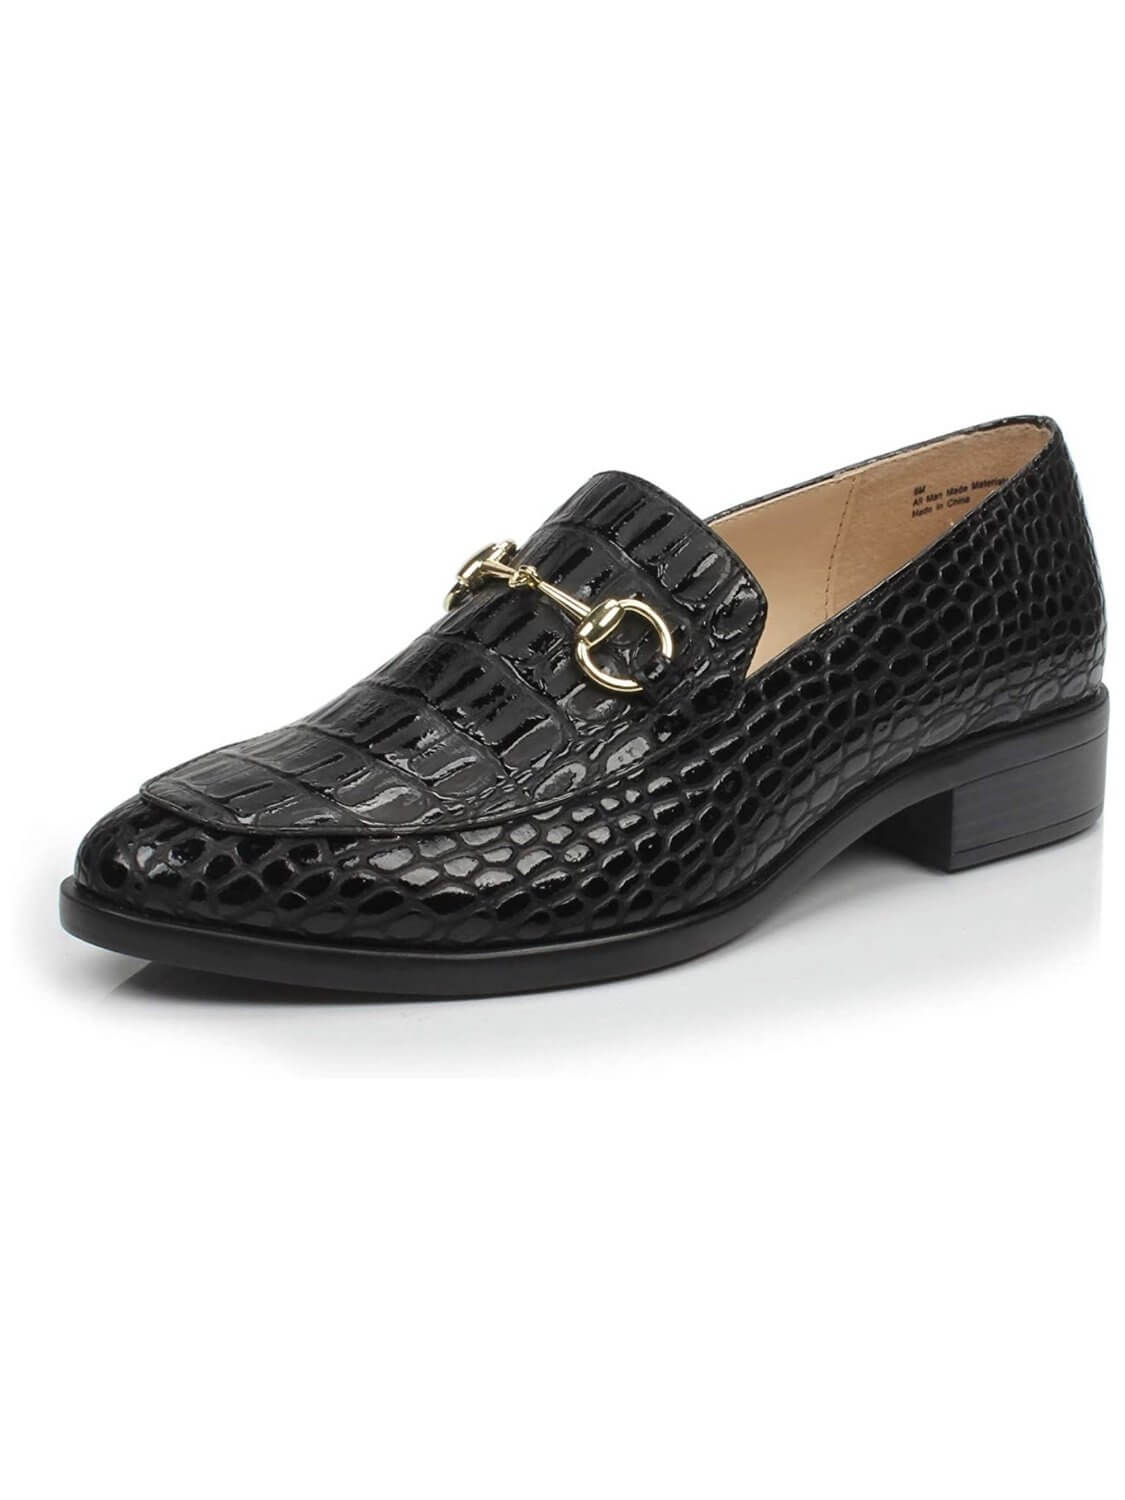 Black loafers of European design, in velvet feeling fabric, rubber sole and gold detail on the front.